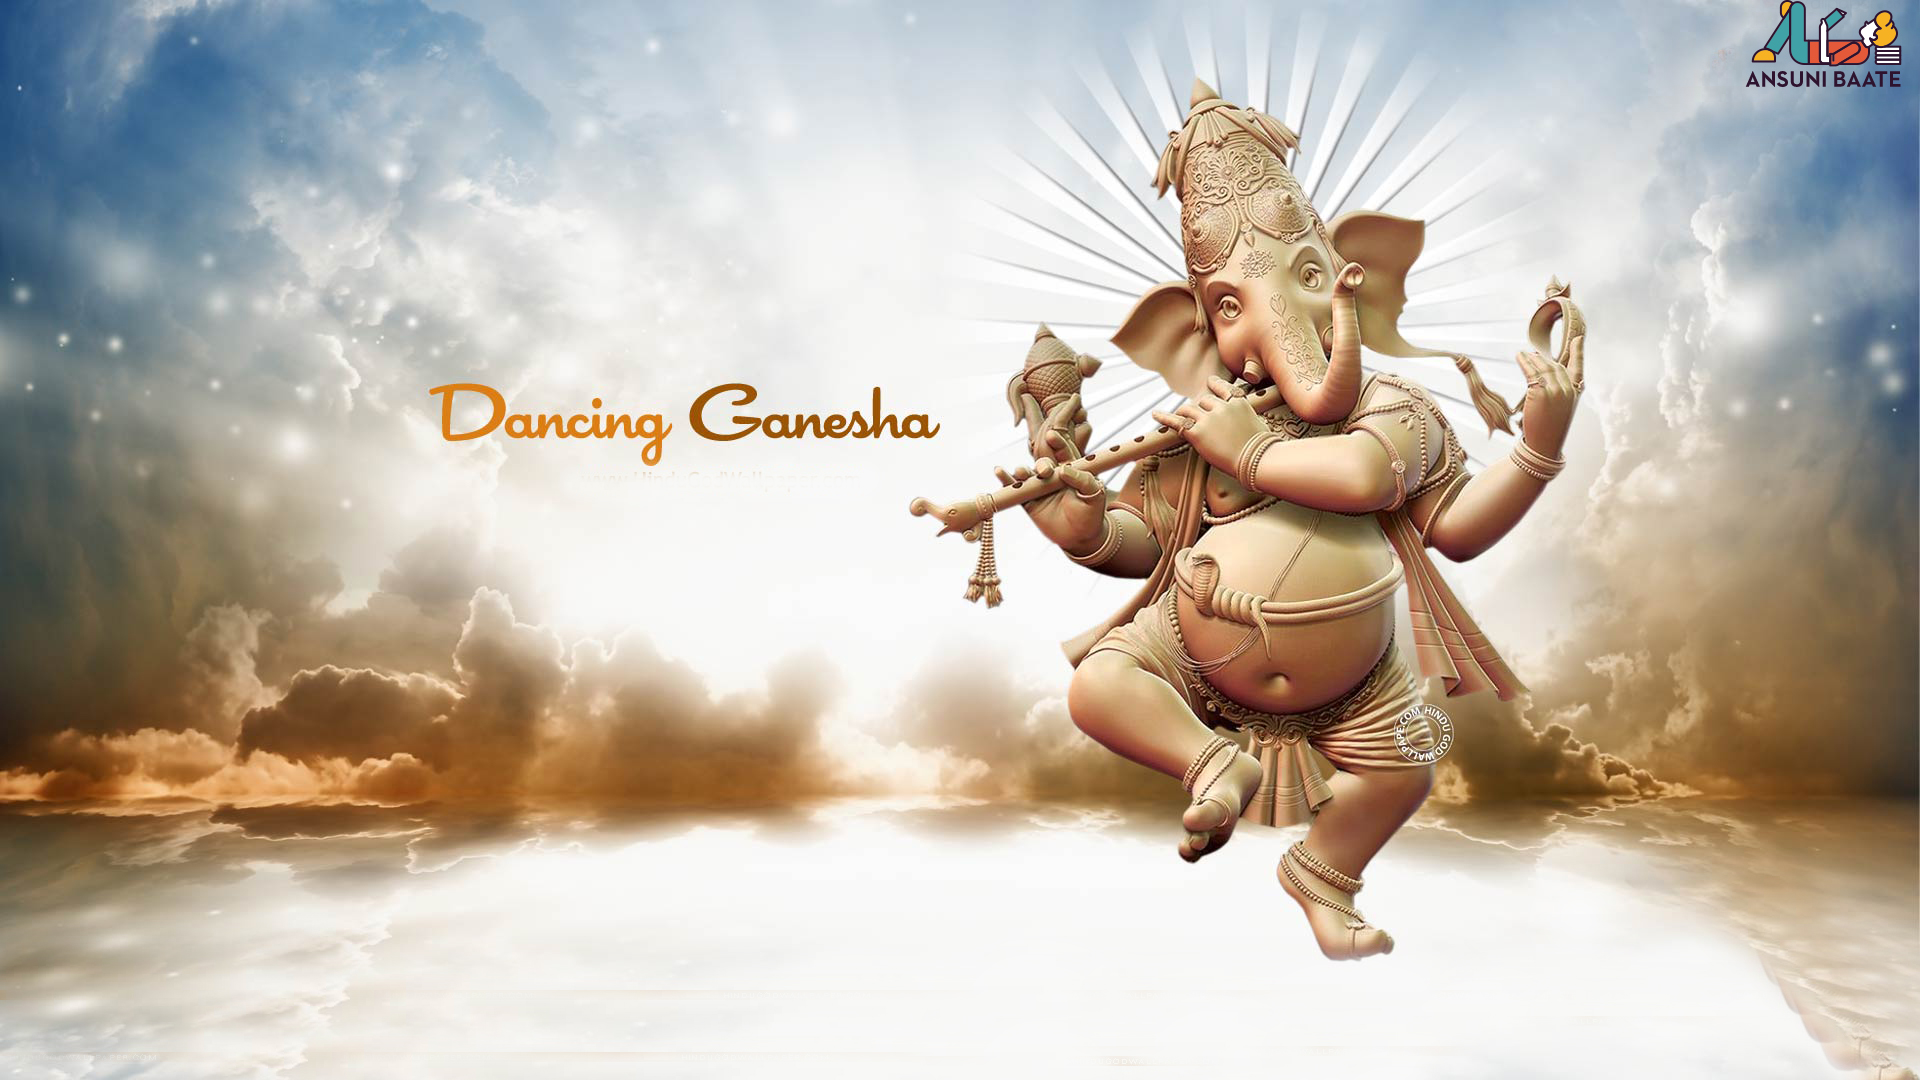 Ganesh Wallpaper For Mobileganesh Wallpaper Download Ganesh Images Photos Ganesh Images Full